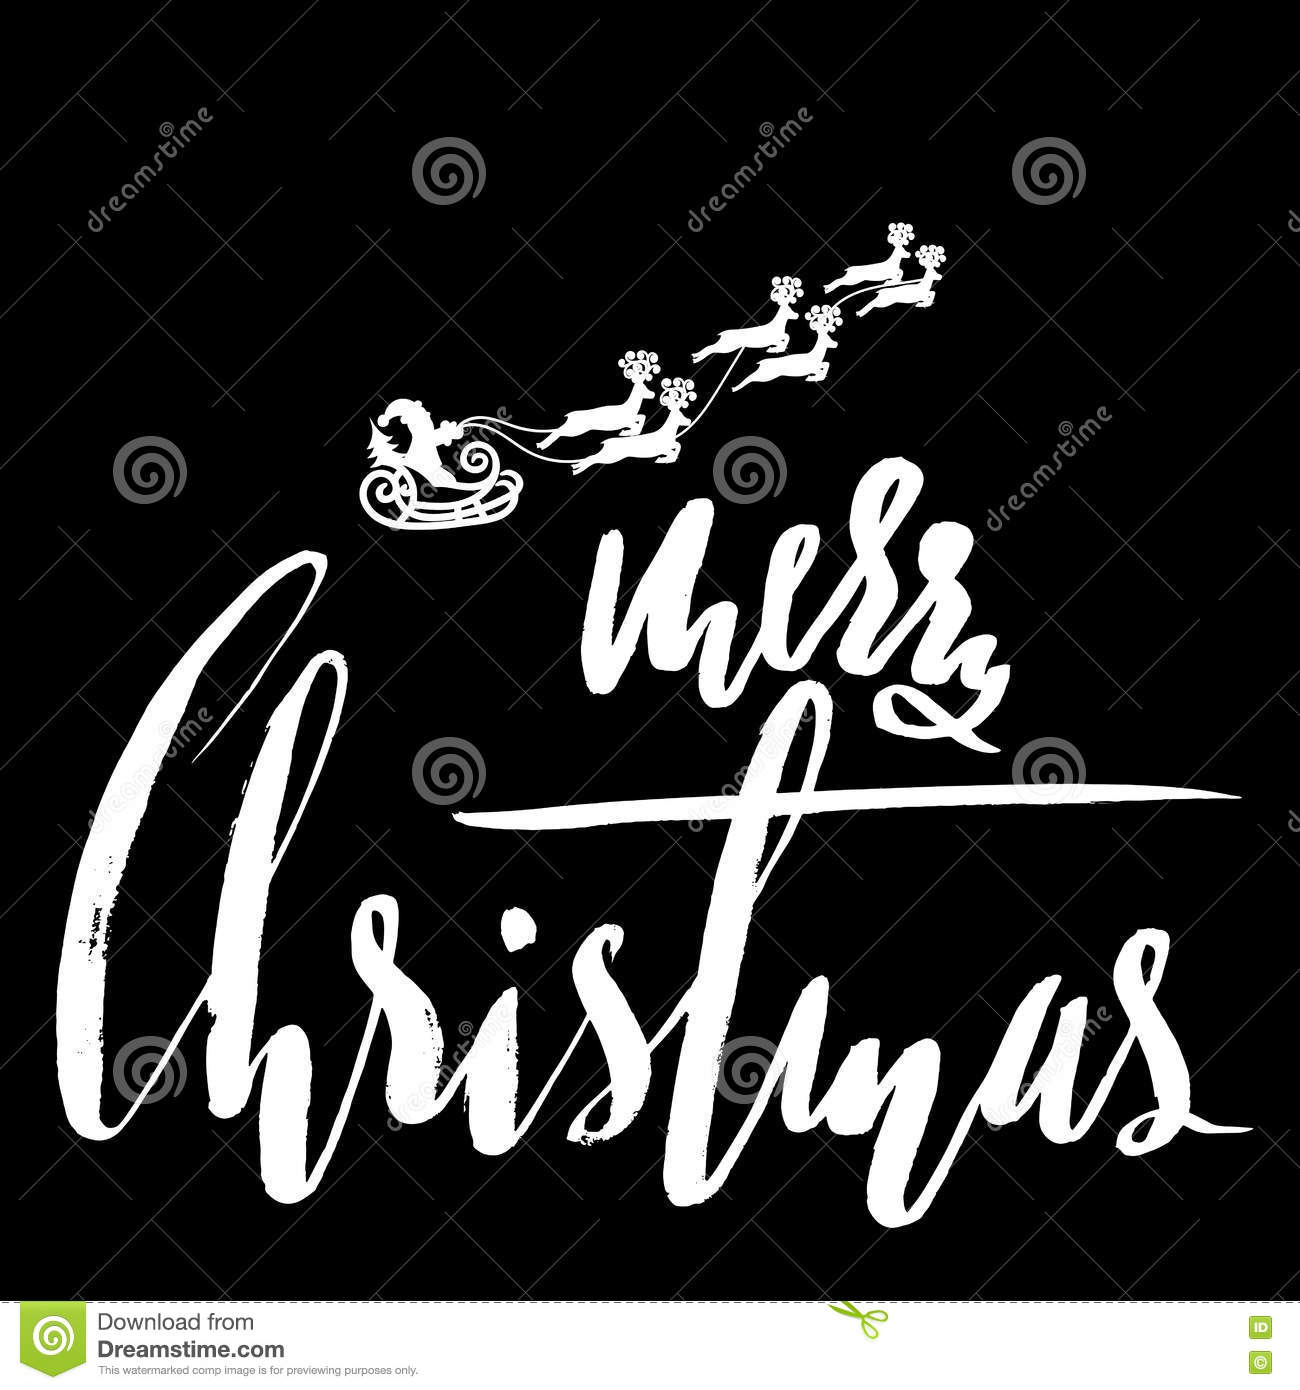 Classic Lettering Design For A Christmas Greetings Santa Claus